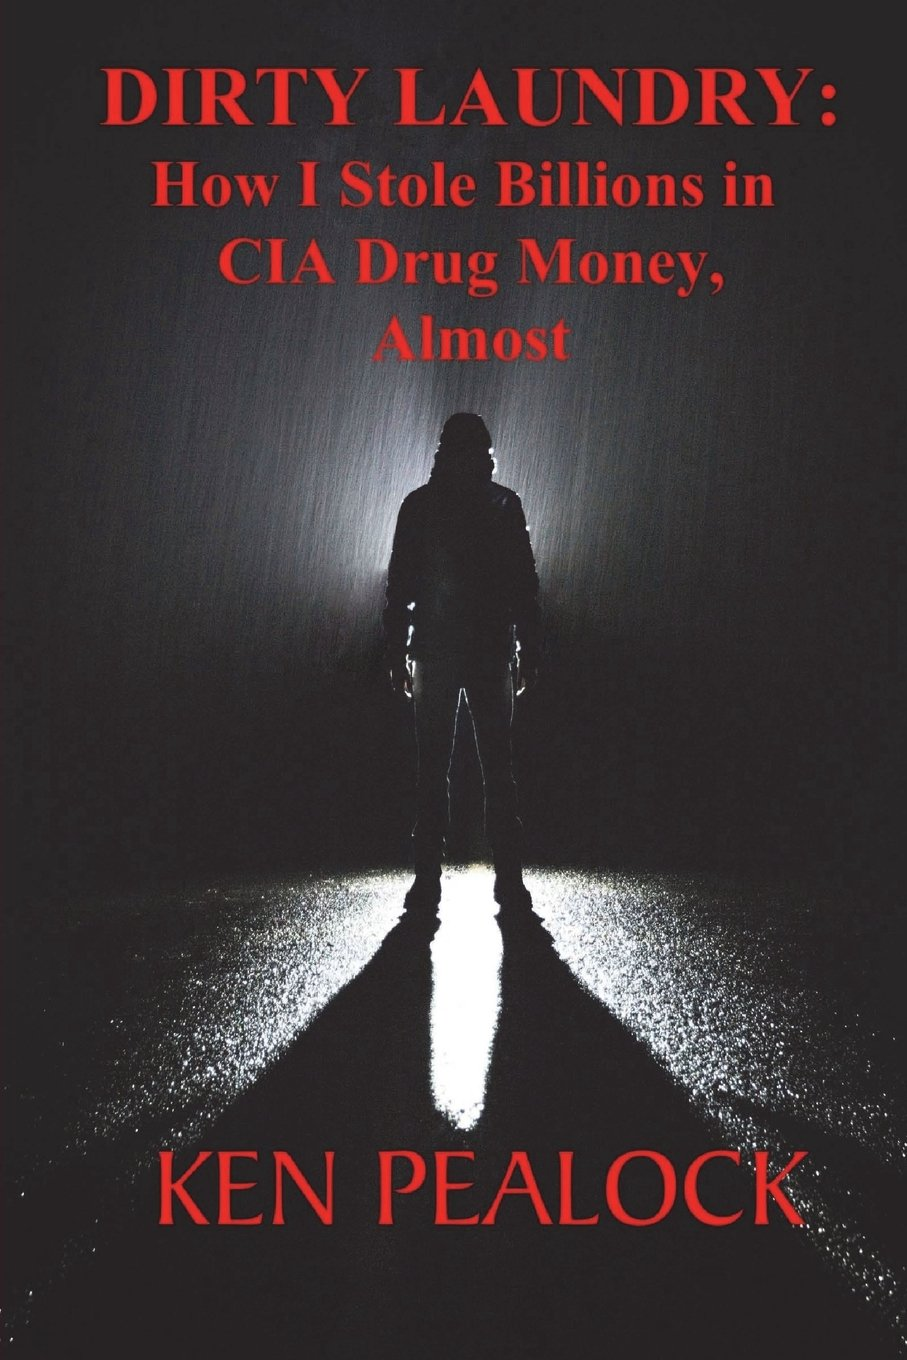 Dirty Laundry: How I Stole Billions in CIA Drug Money